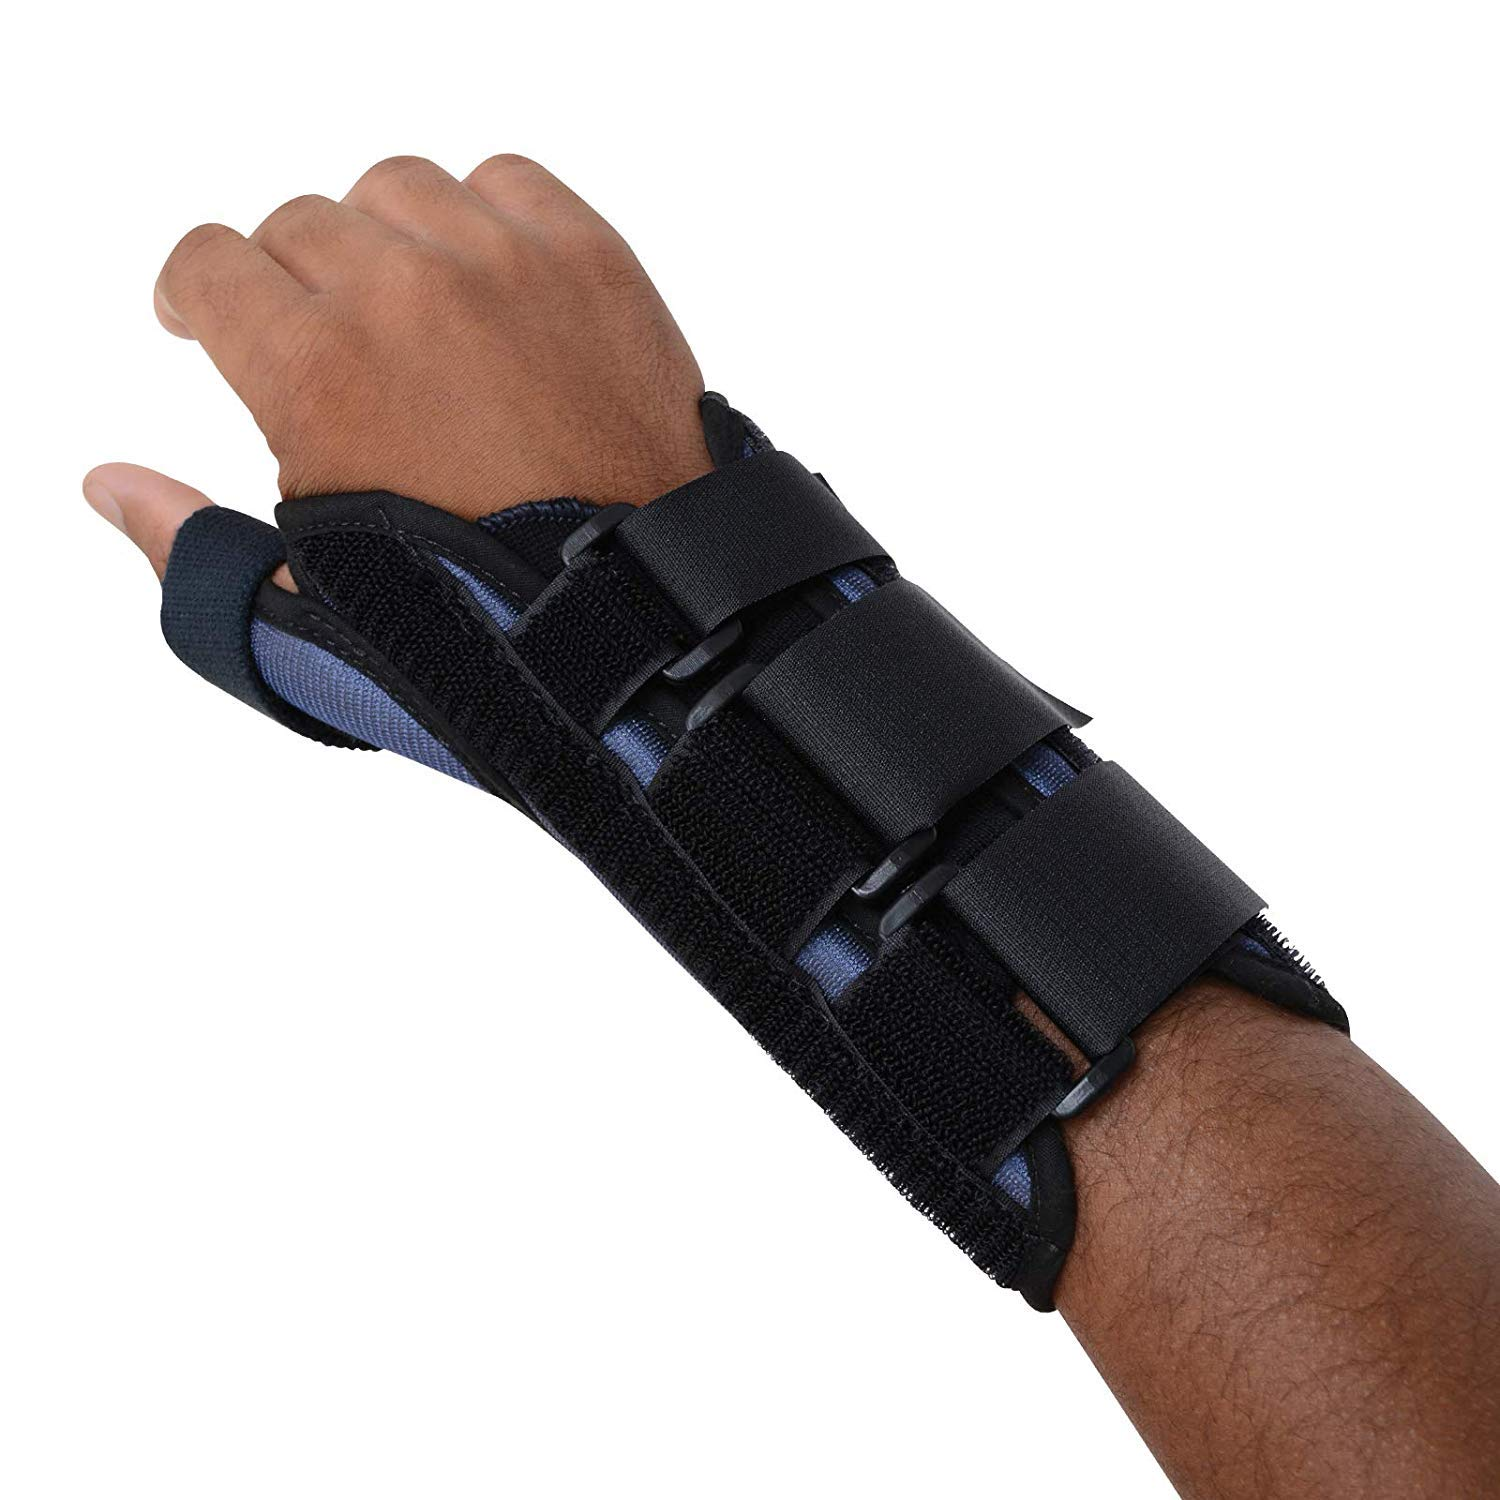 Sammons Preston Thumb Spica Wrist Brace, Thumb Splint, Wrist Splint for Wrist Support, Wrist Brace, Thumb Brace for CMC & MC Joints, Wrist Spica, Thumb Spica, Thumb Support, Right Hand, Small by Sammons Preston